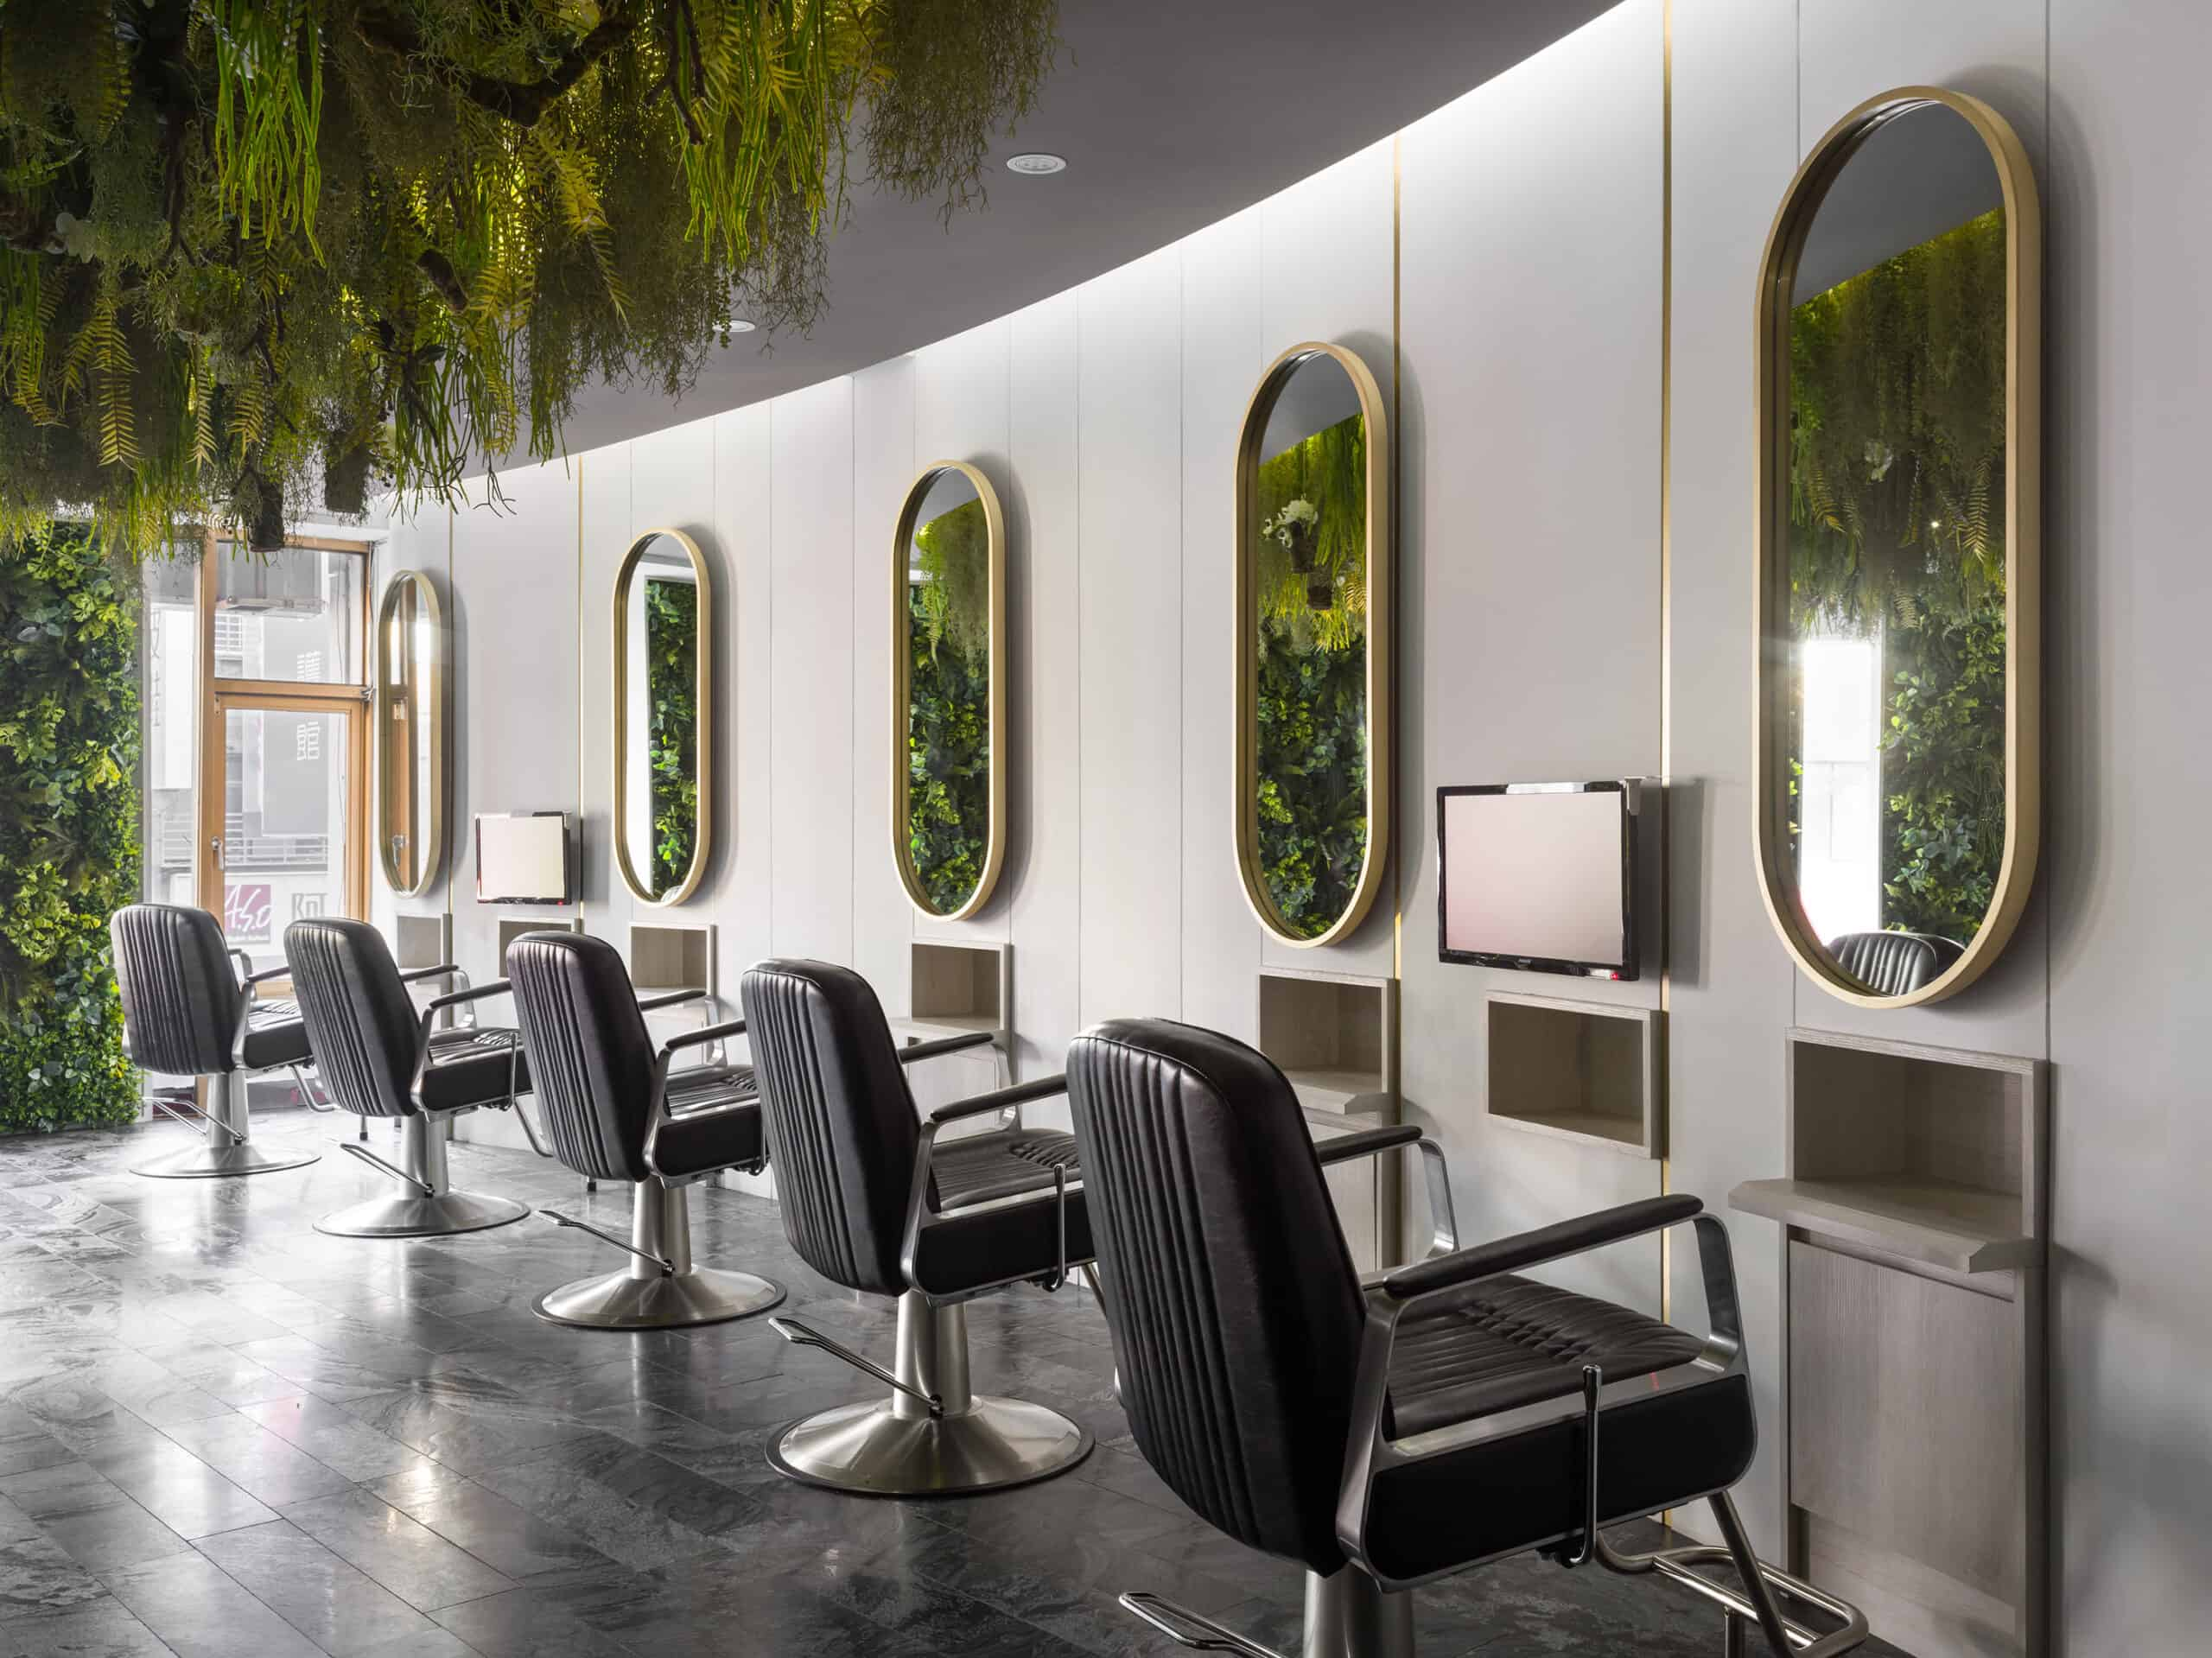 14 Beautiful Hair Salon Designs Decor Ideas Images